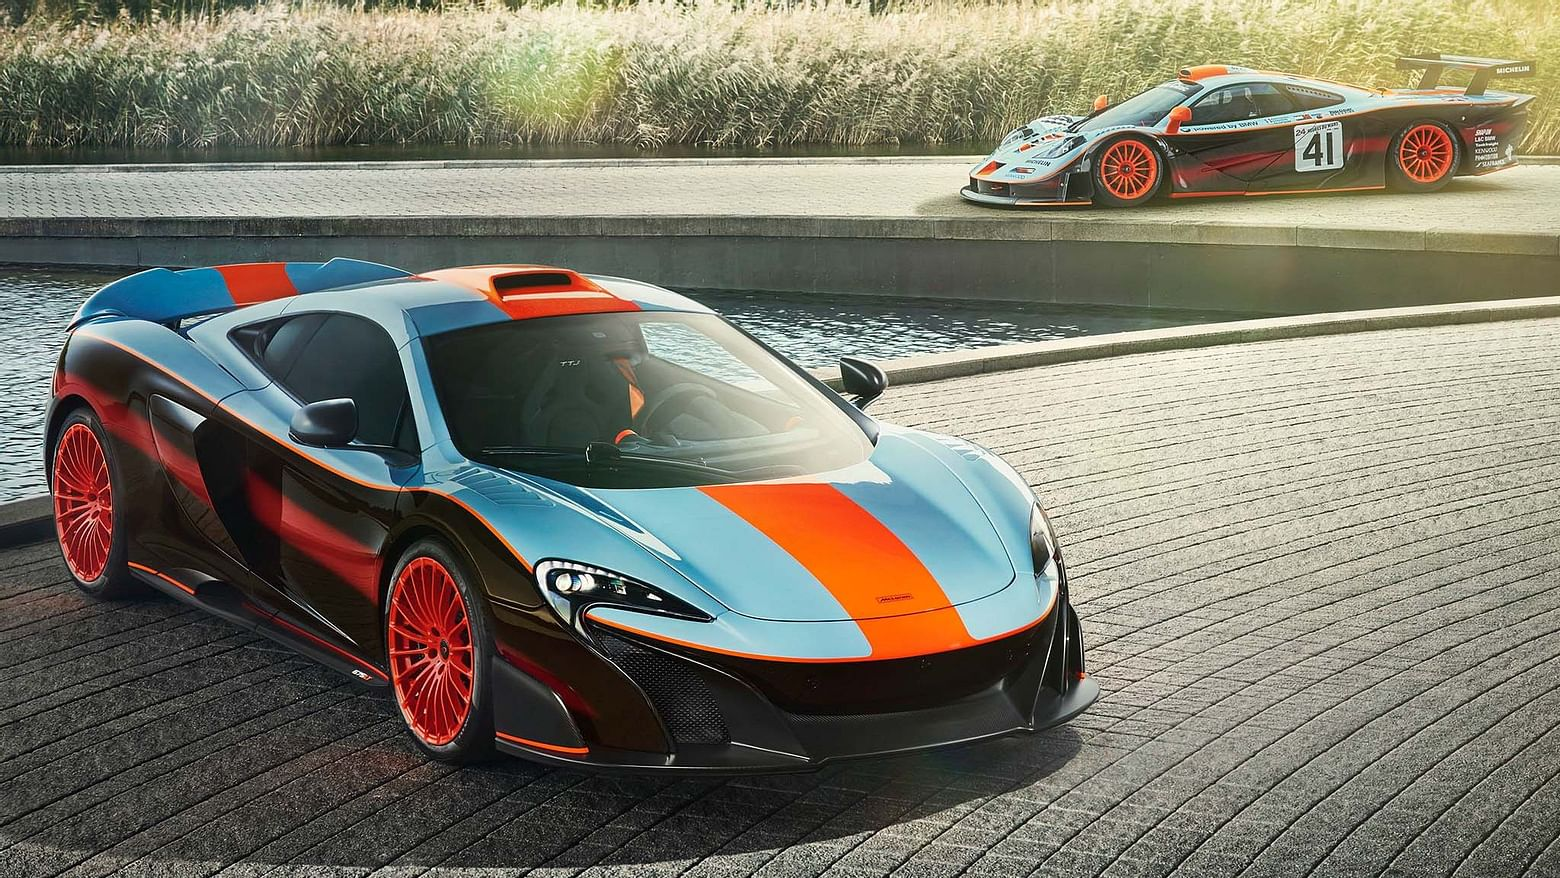 McLaren with Ether on BitCars